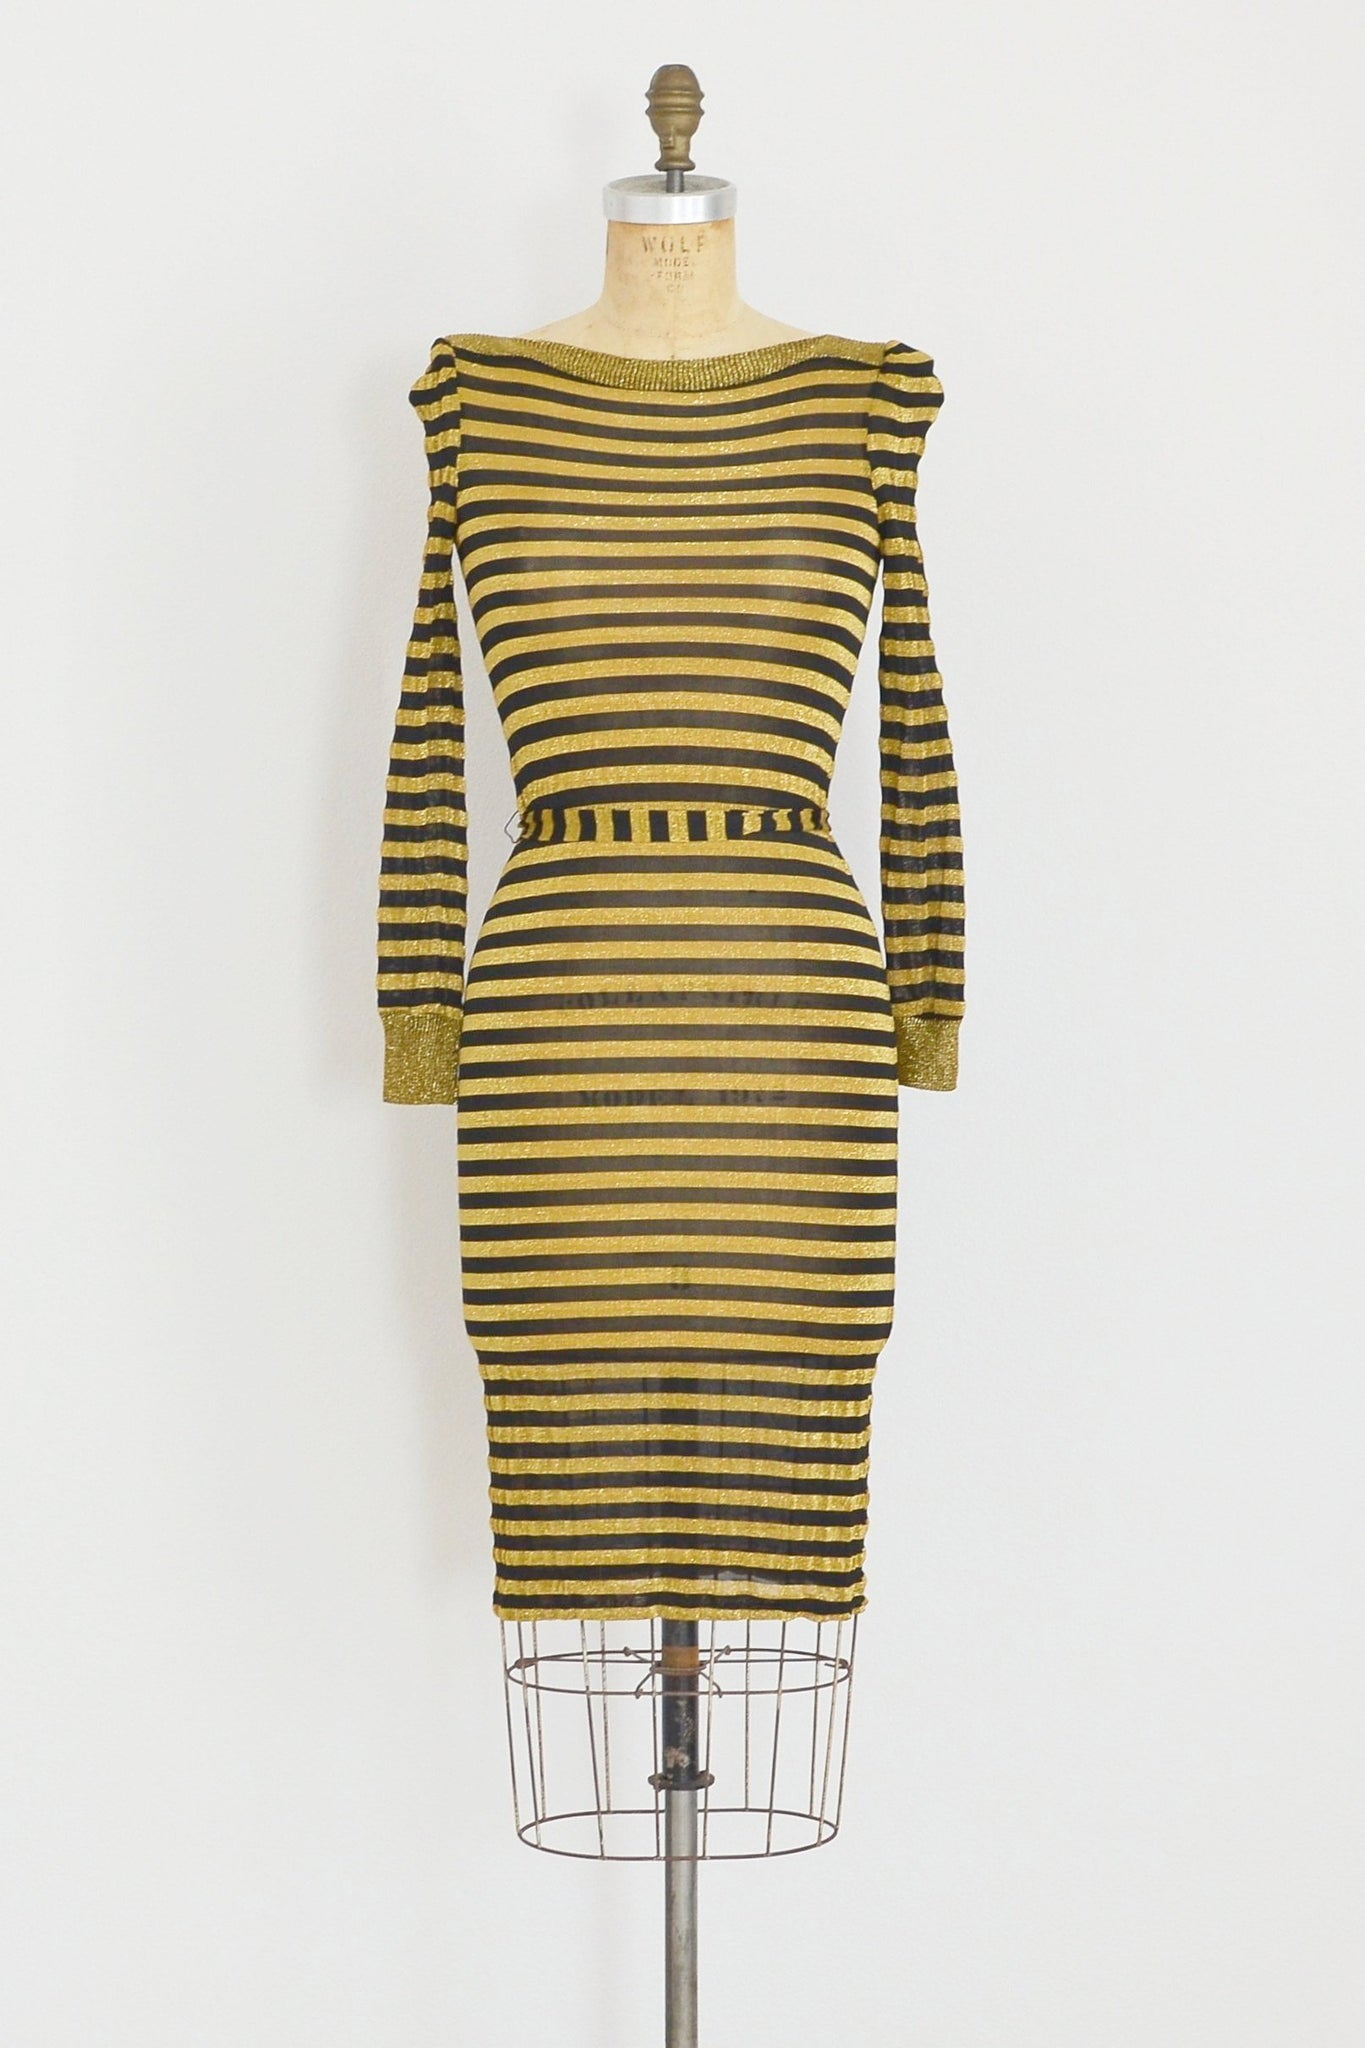 Gold Lurex Dress - Pickled Vintage